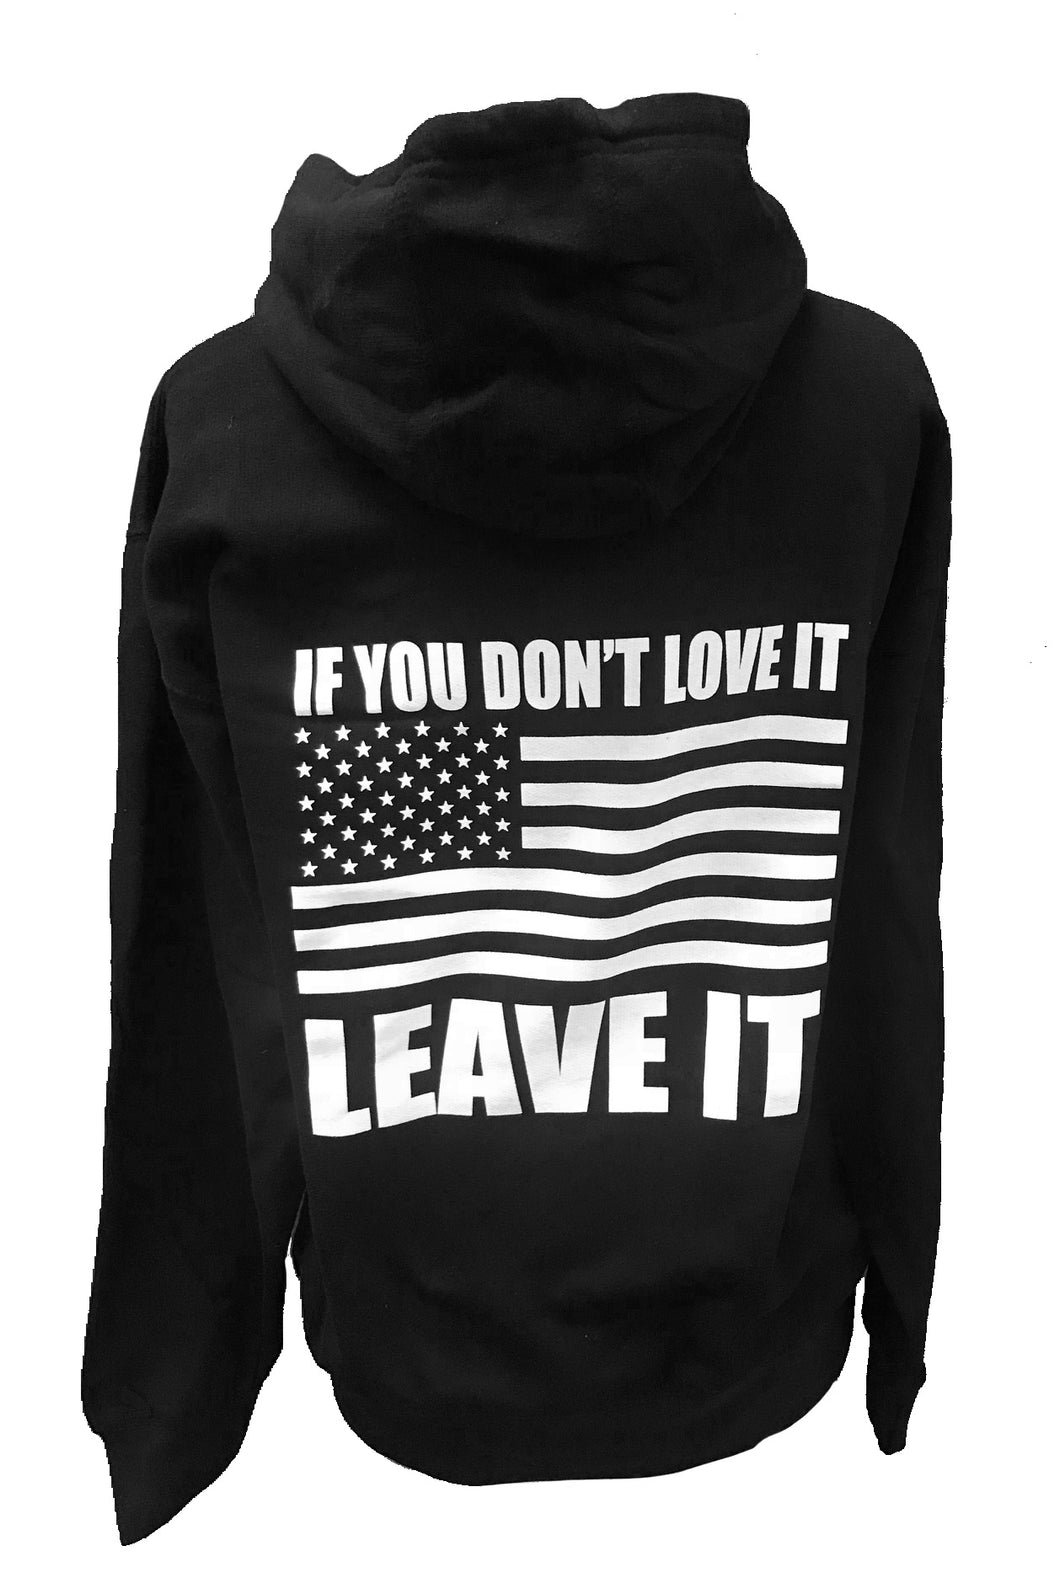 IF YOU DON'T LOVE IT LEAVE IT PULLOVER HOODIE - Trailsclothing.com